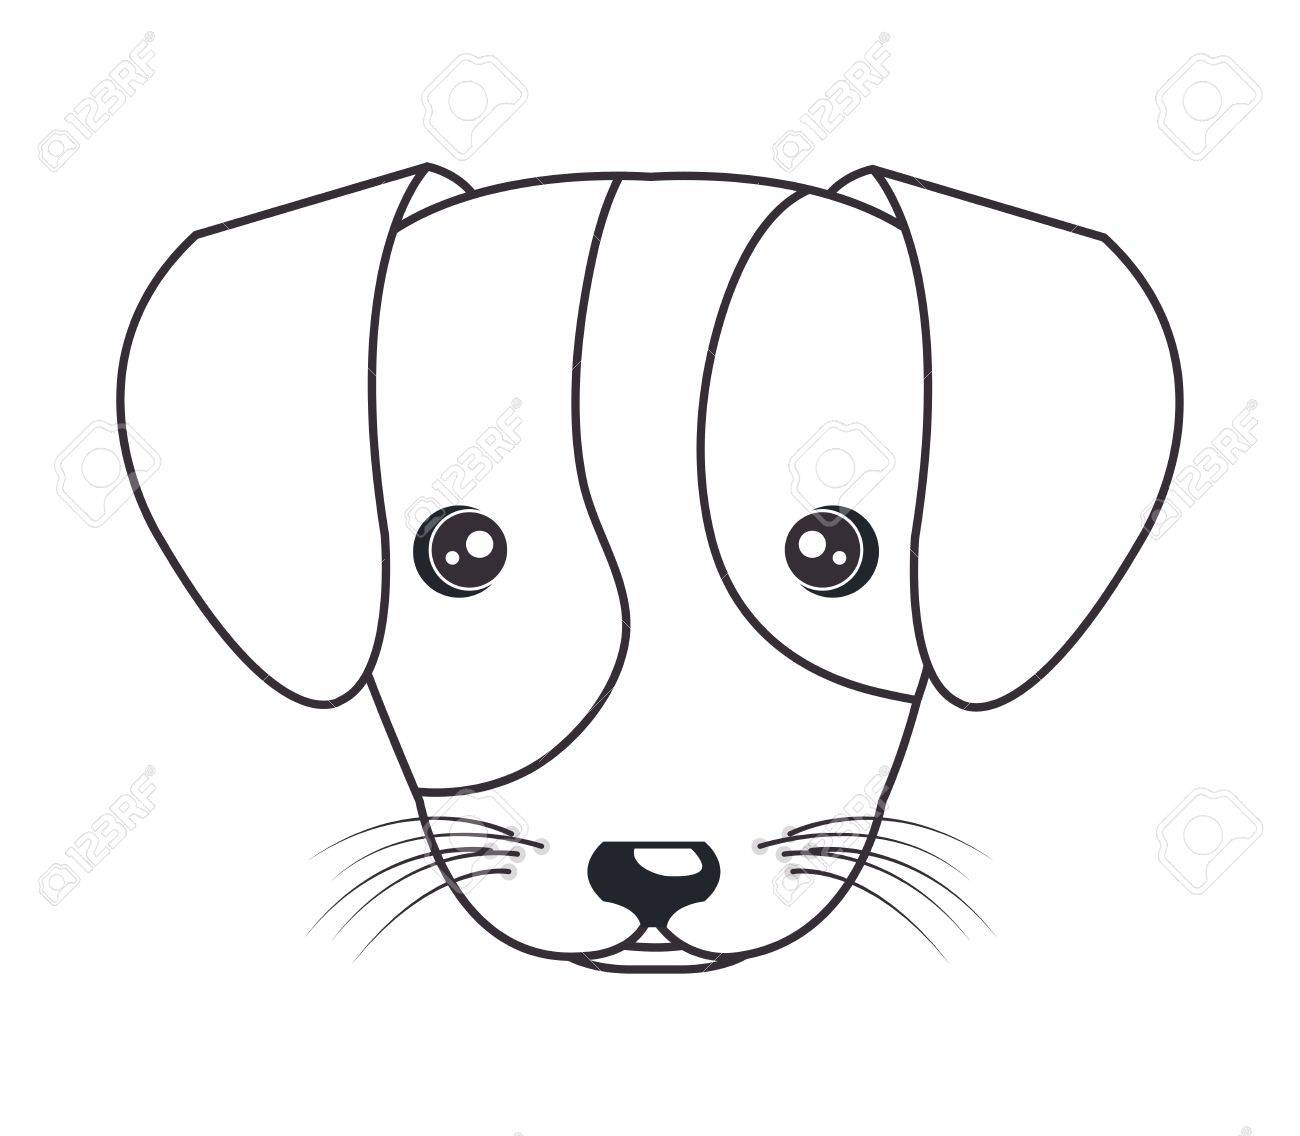 puppy drawing. 1300x1136 Cartoon Cute Puppy Hand Draw Vector Illustration Eps 10 Royalty Dog Face Drawing at GetDrawings com  Free for personal use